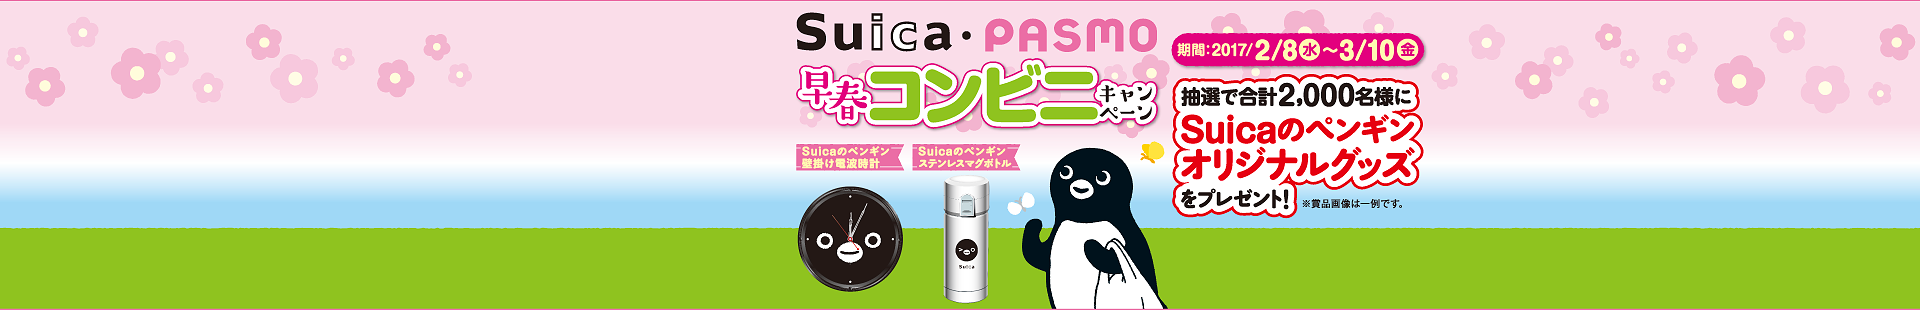 Suica・PASMO 新春コンビニキャンペーン